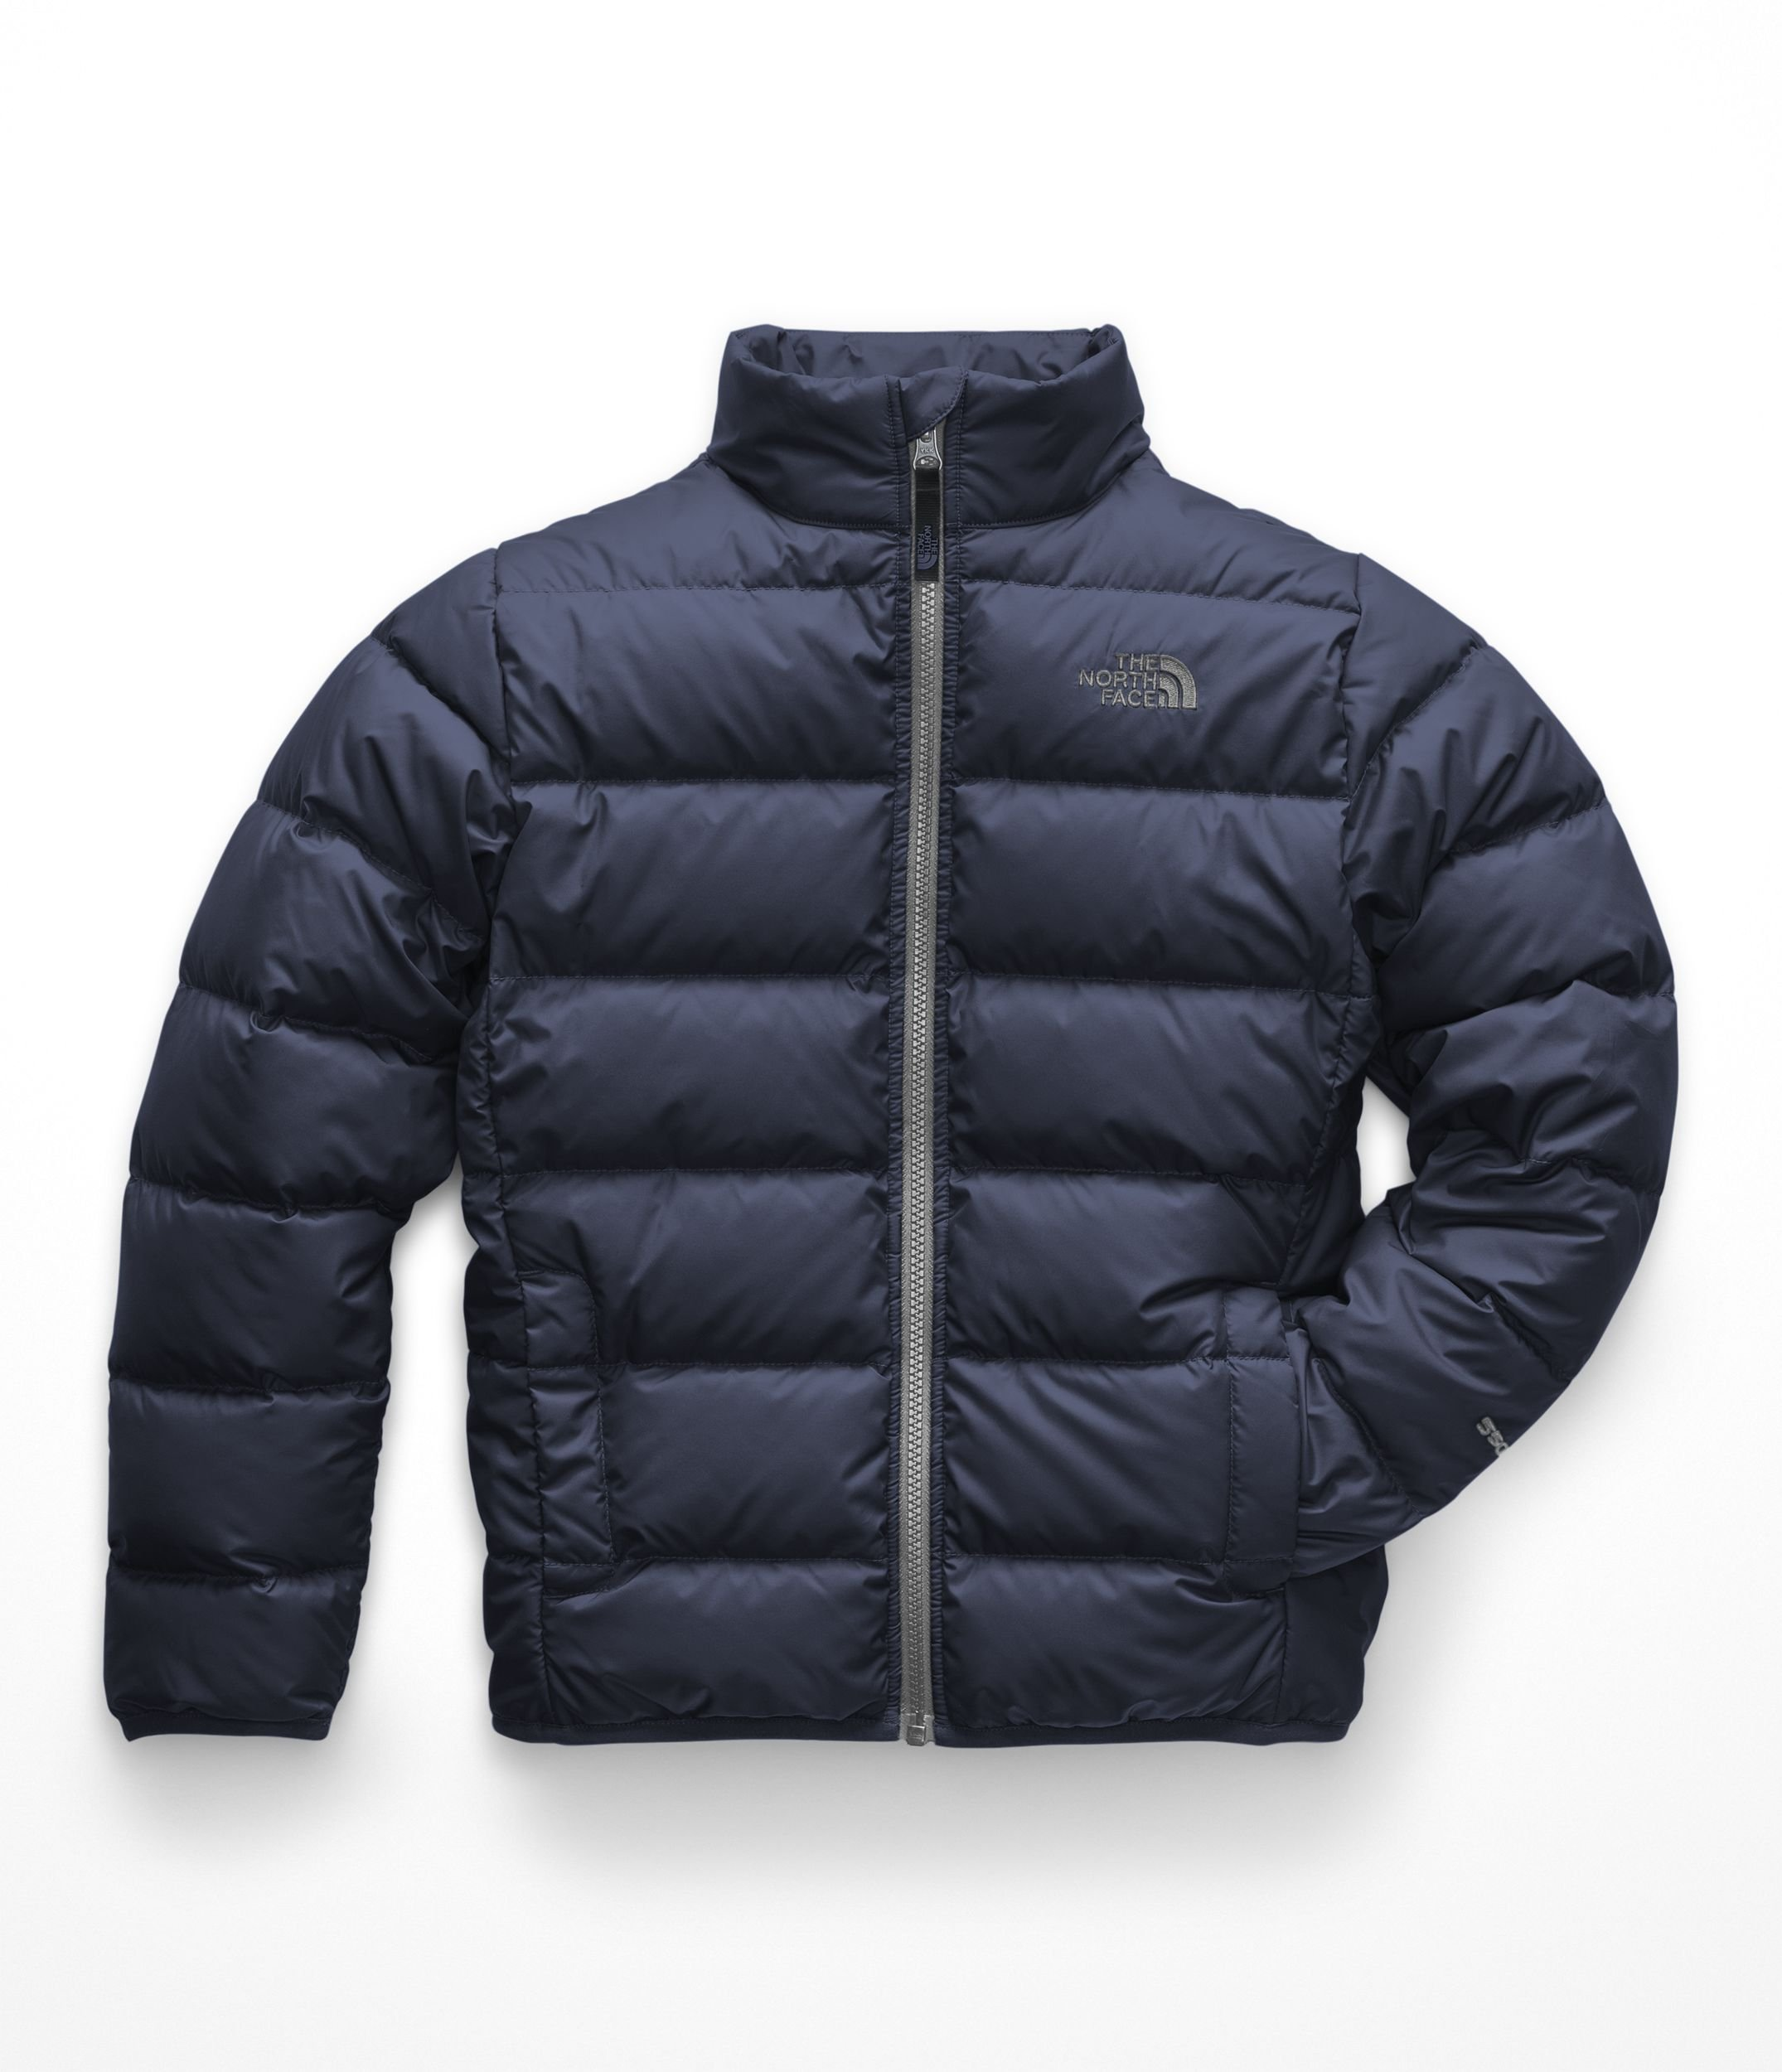 The North Face Boys Andes Jacket - Cosmic Blue & Mid Grey - L